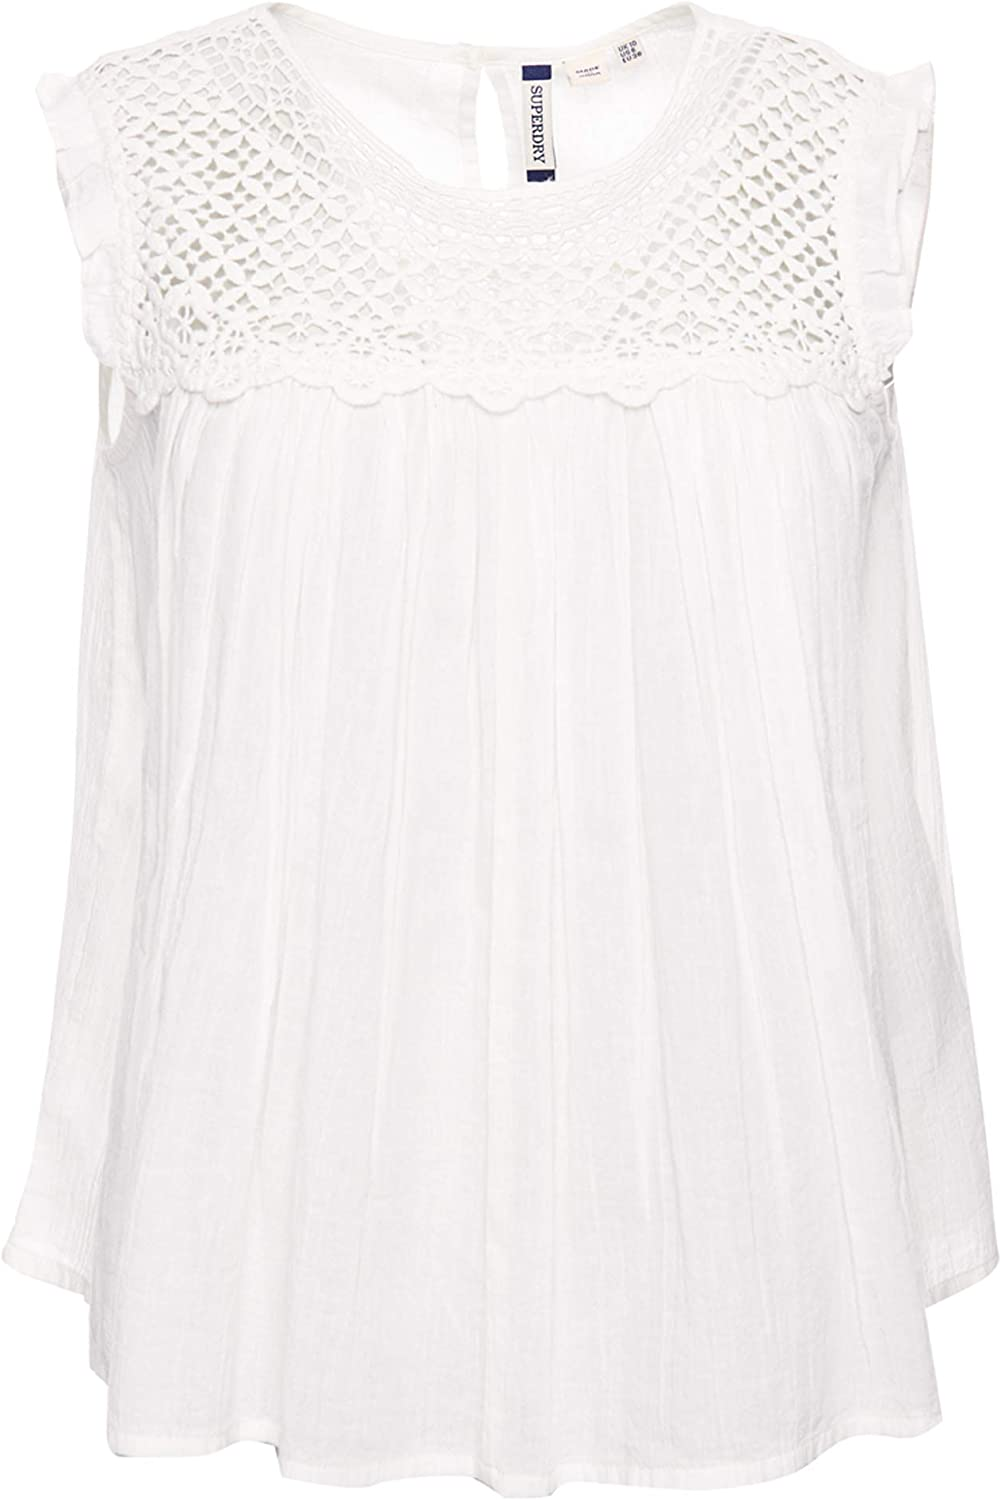 Superdry Ellison Textured Lace Vest Top